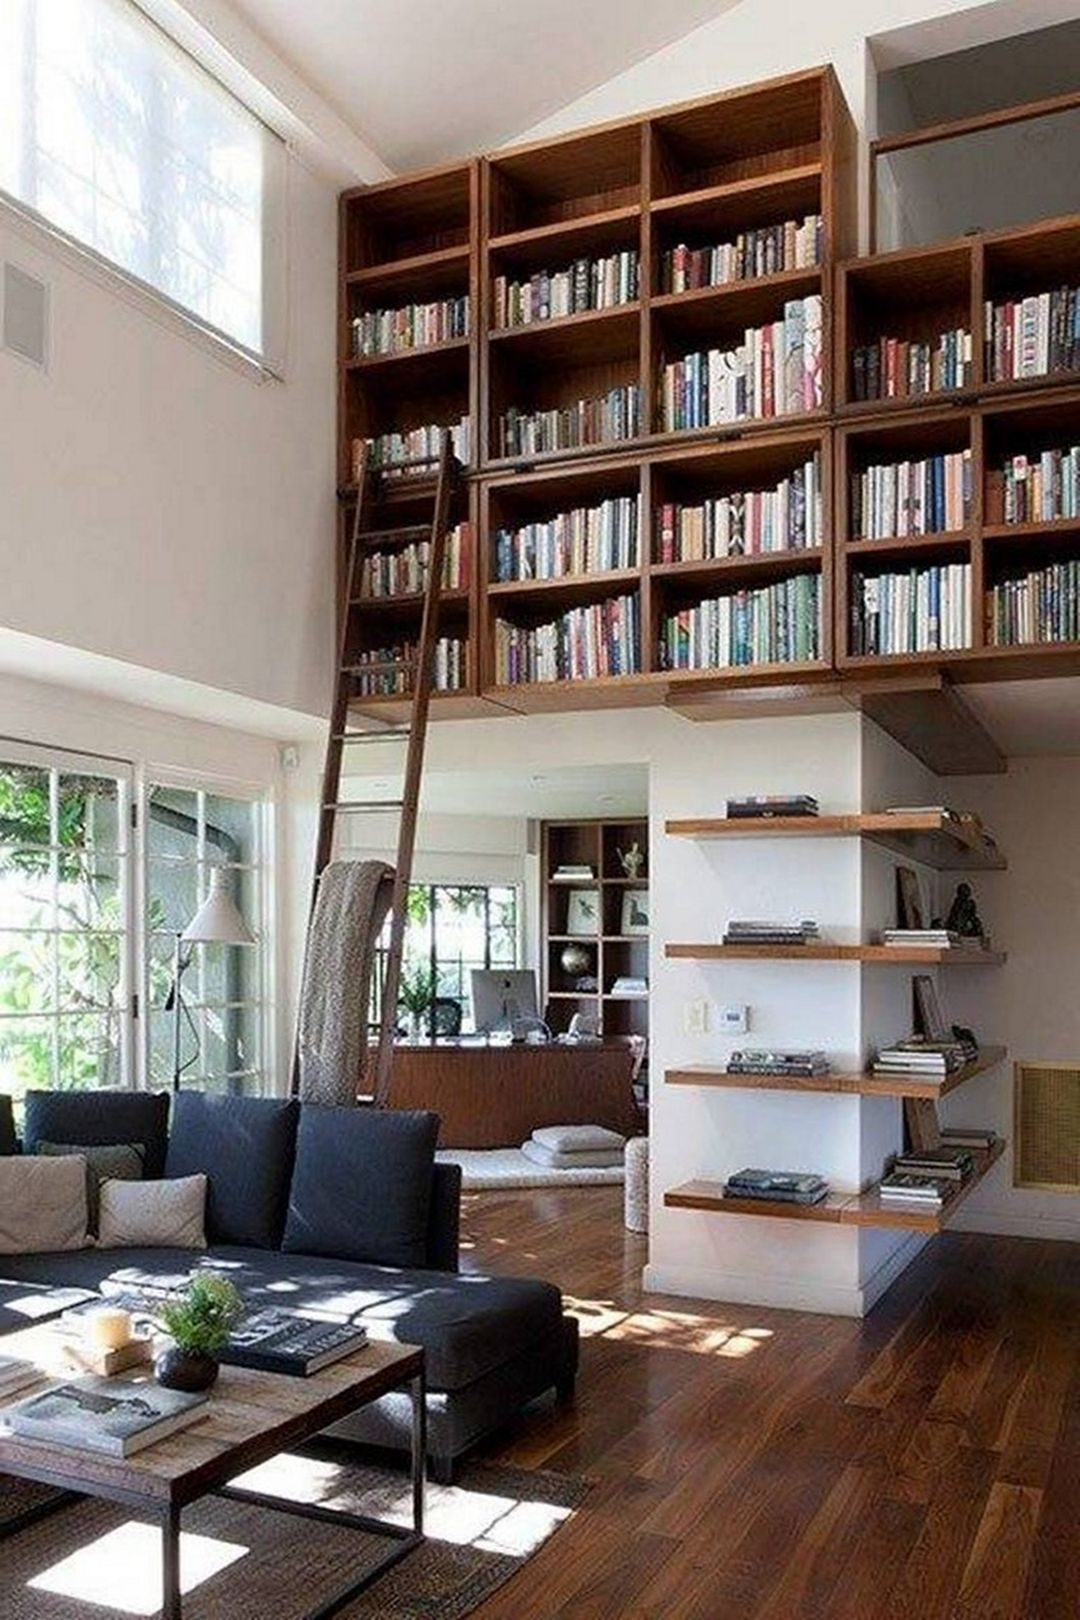 Small Home Library Design: Pin By Megan Virginia On Our Home